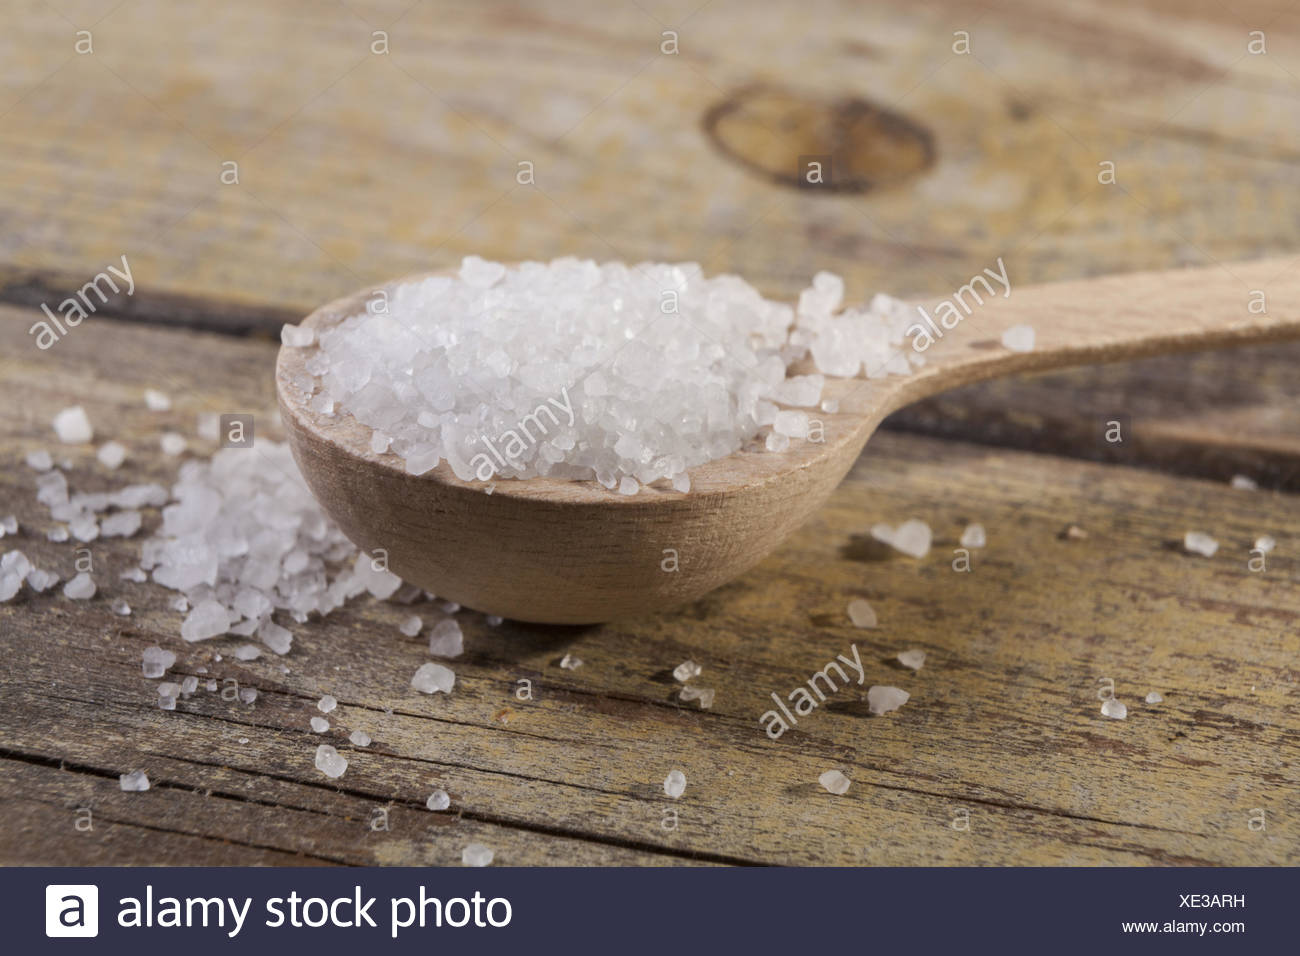 Salt Cristals - Stock Image